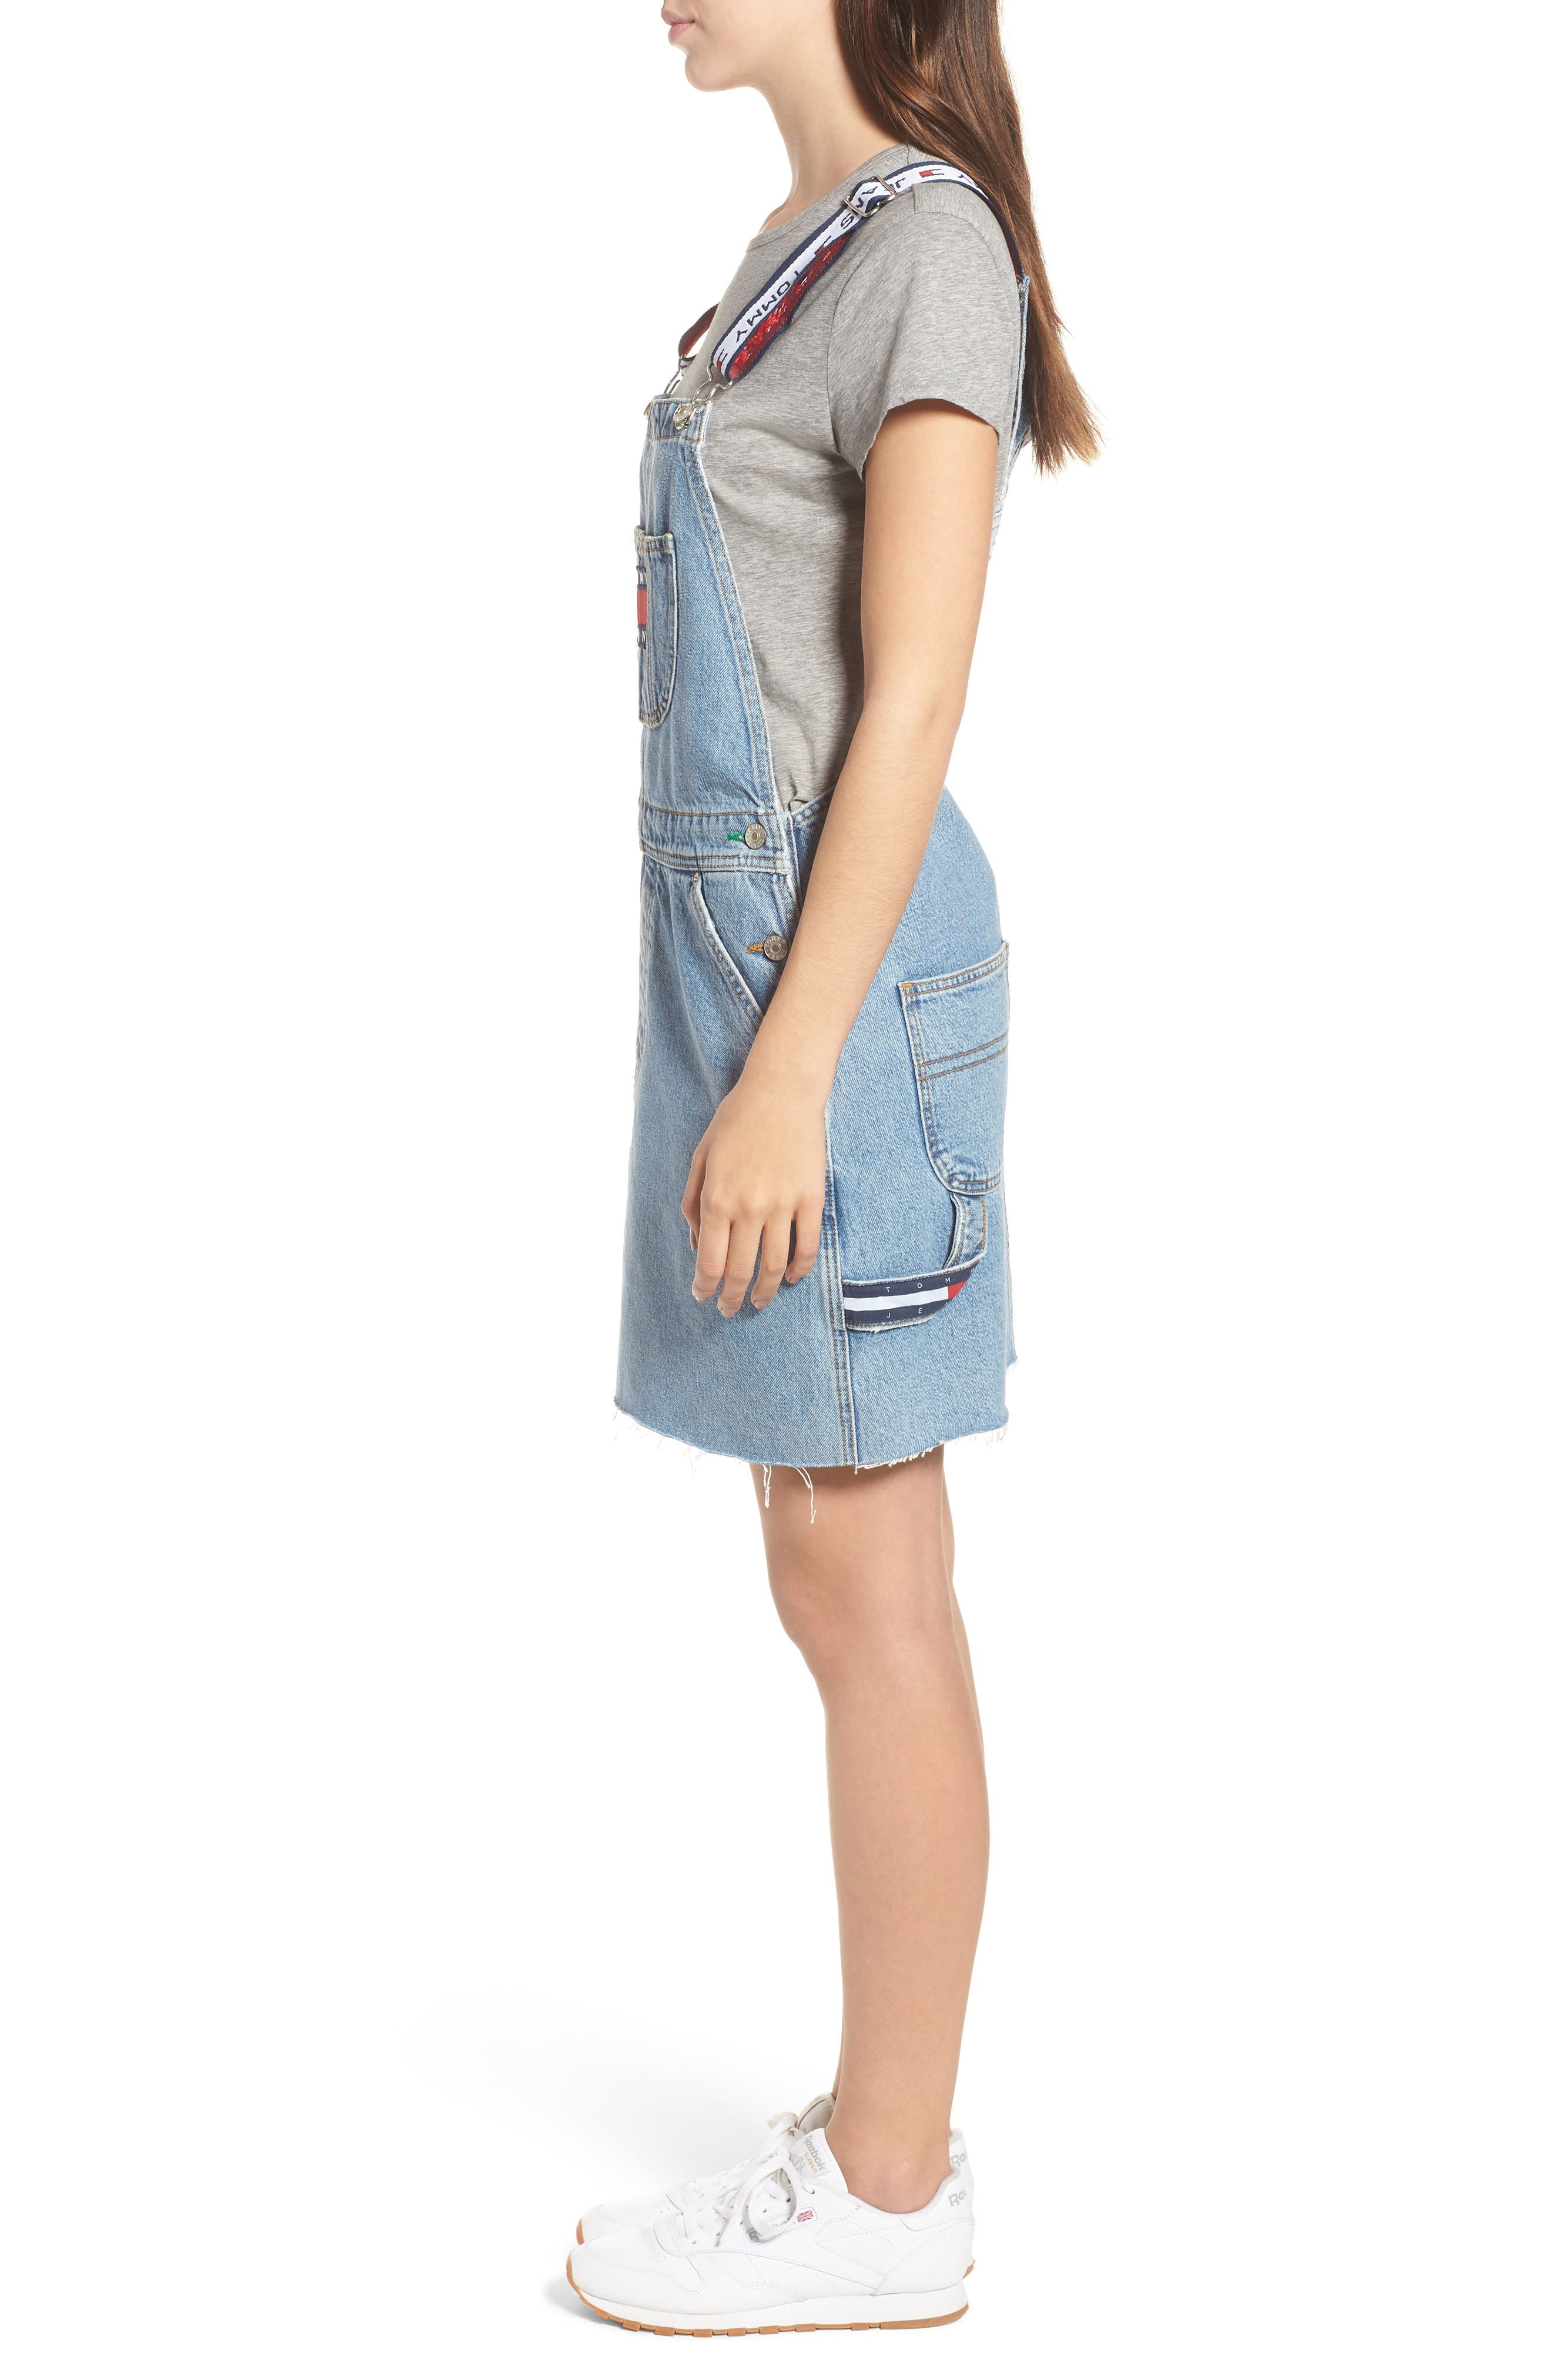 Dunagree Dress,                             Alternate thumbnail 3, color,                             Light Denim Blue